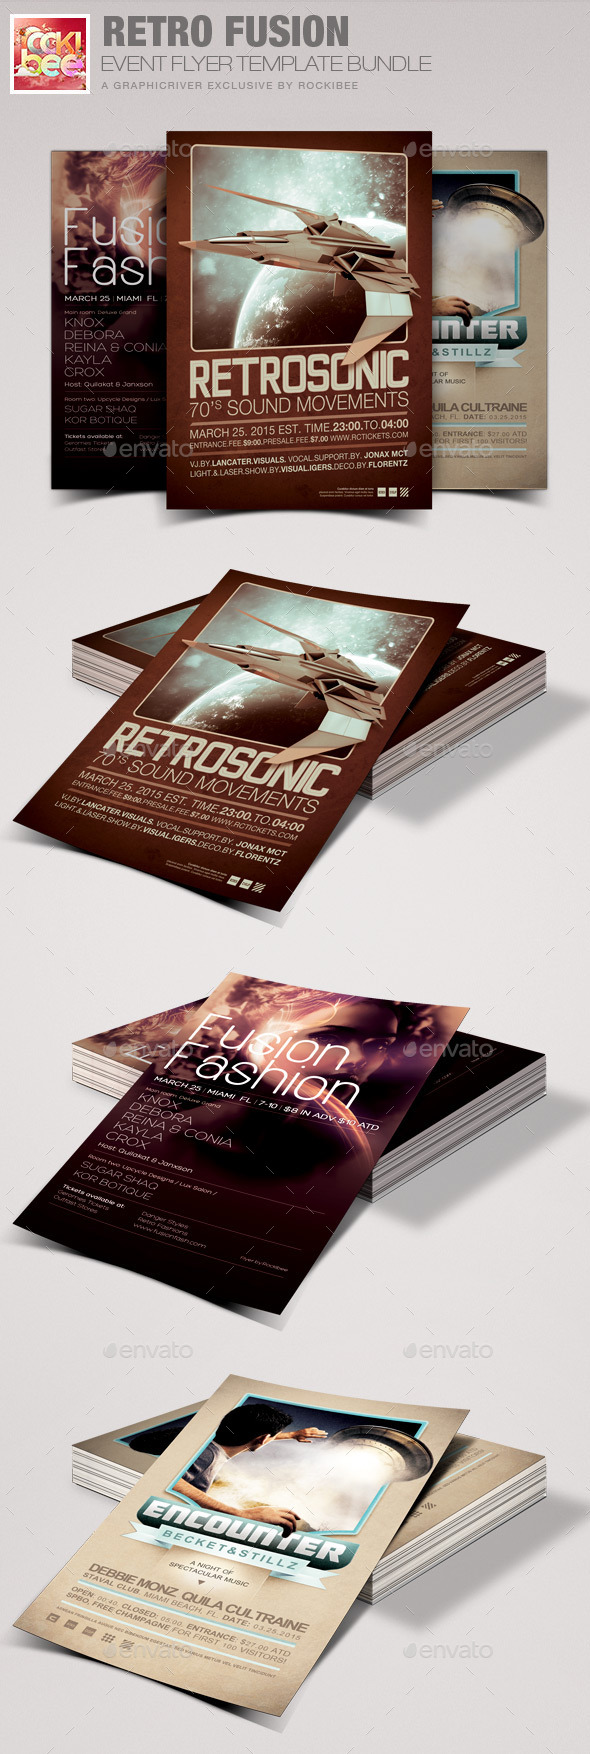 Retro Fusion Event Flyer Template Bundle